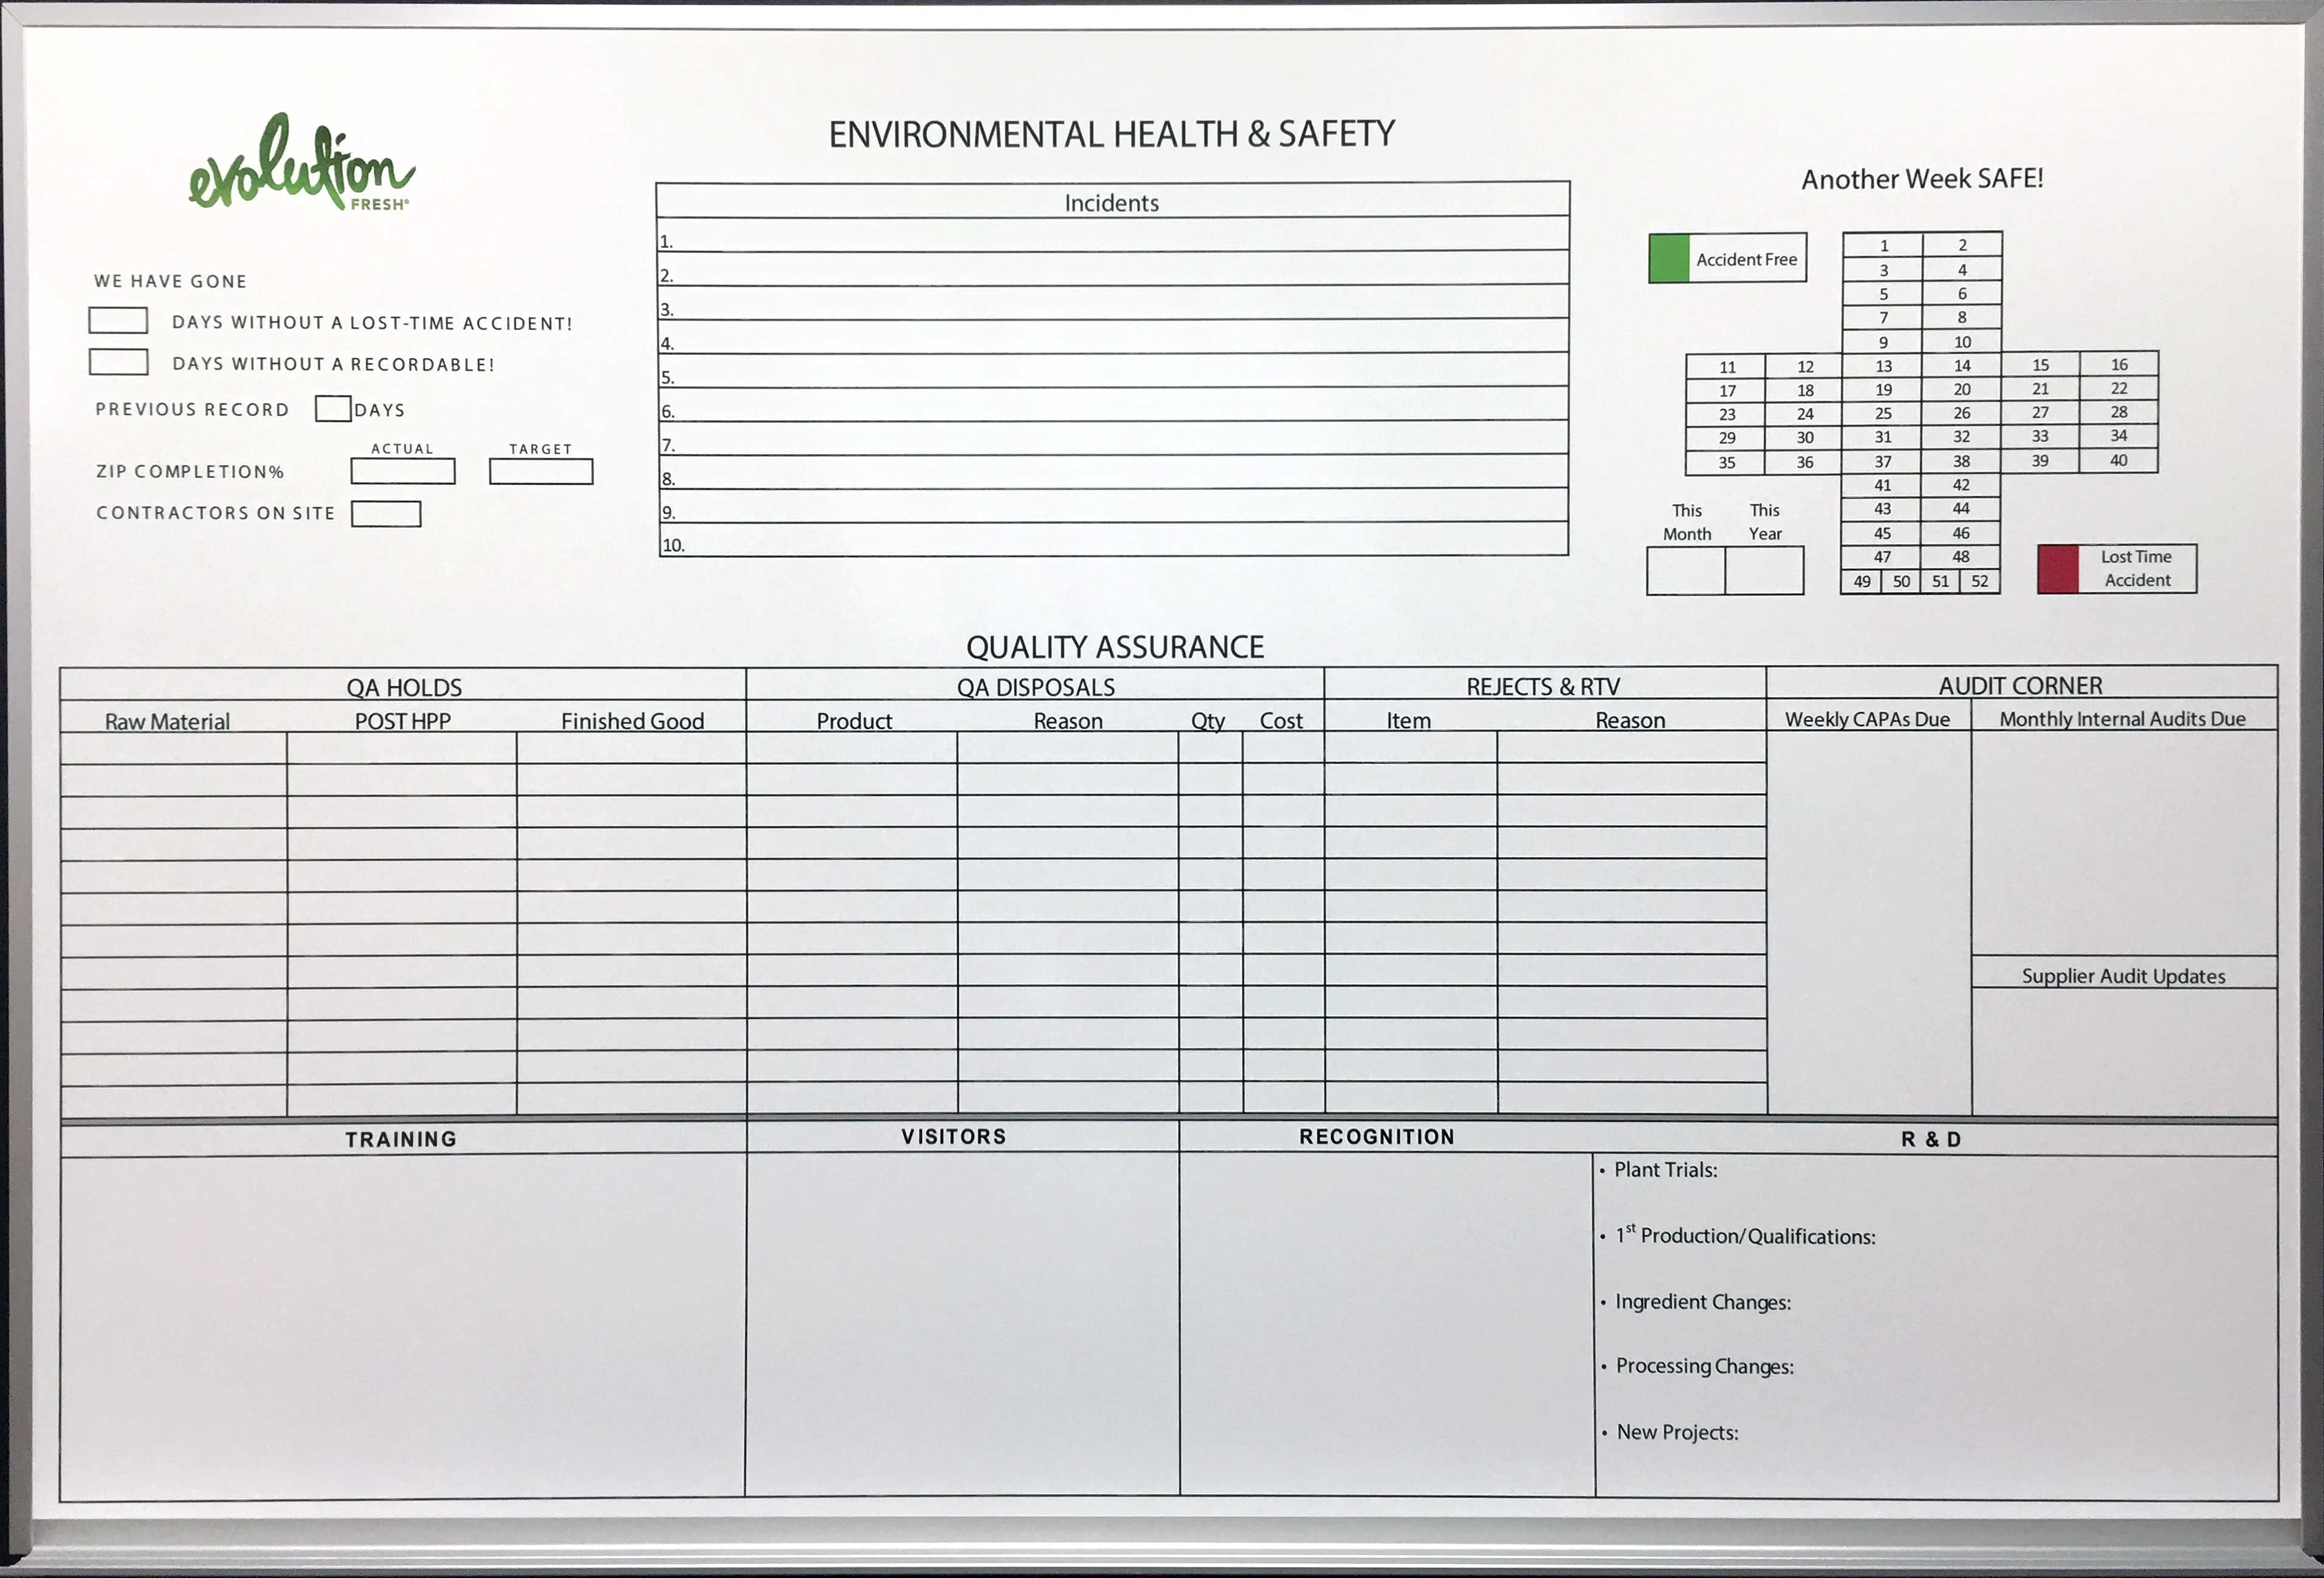 LEAN and Workplace Whiteboards Environmental health